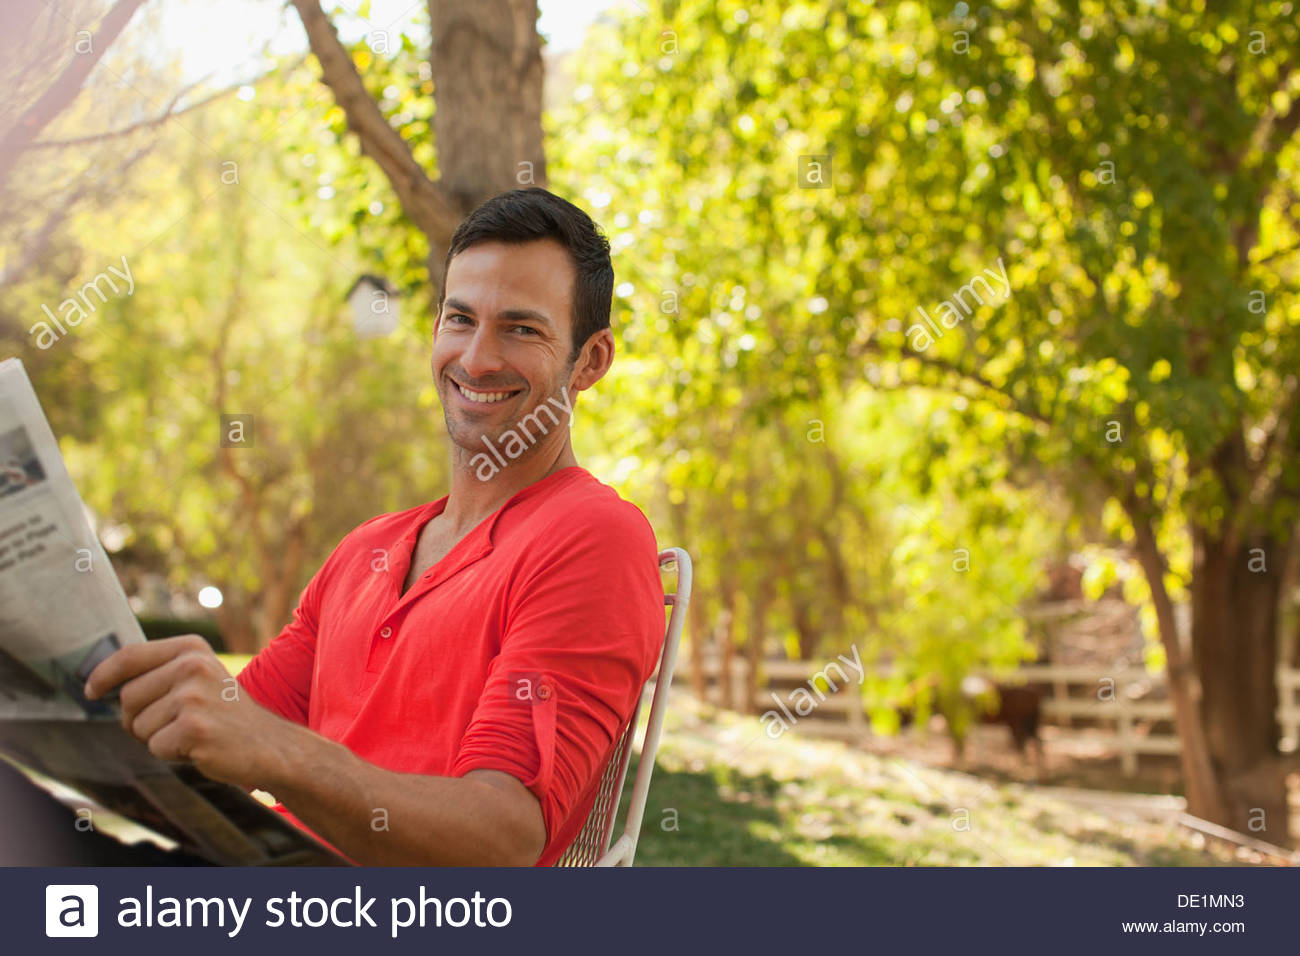 Man reading newspaper outdoors - Stock Image